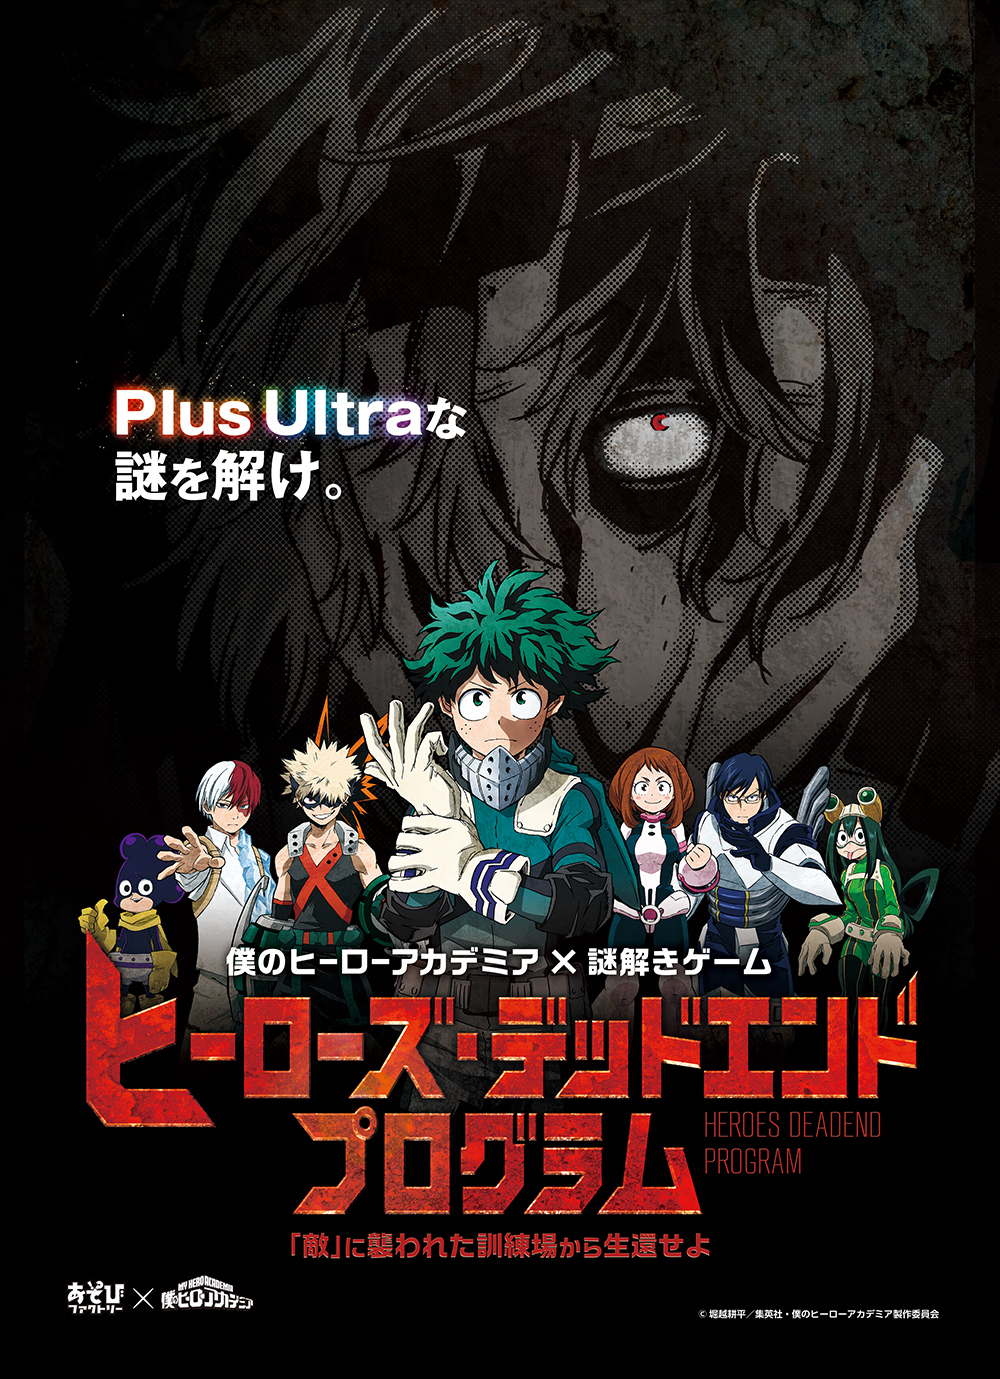 'My Hero Academia' Real Life Escape Game